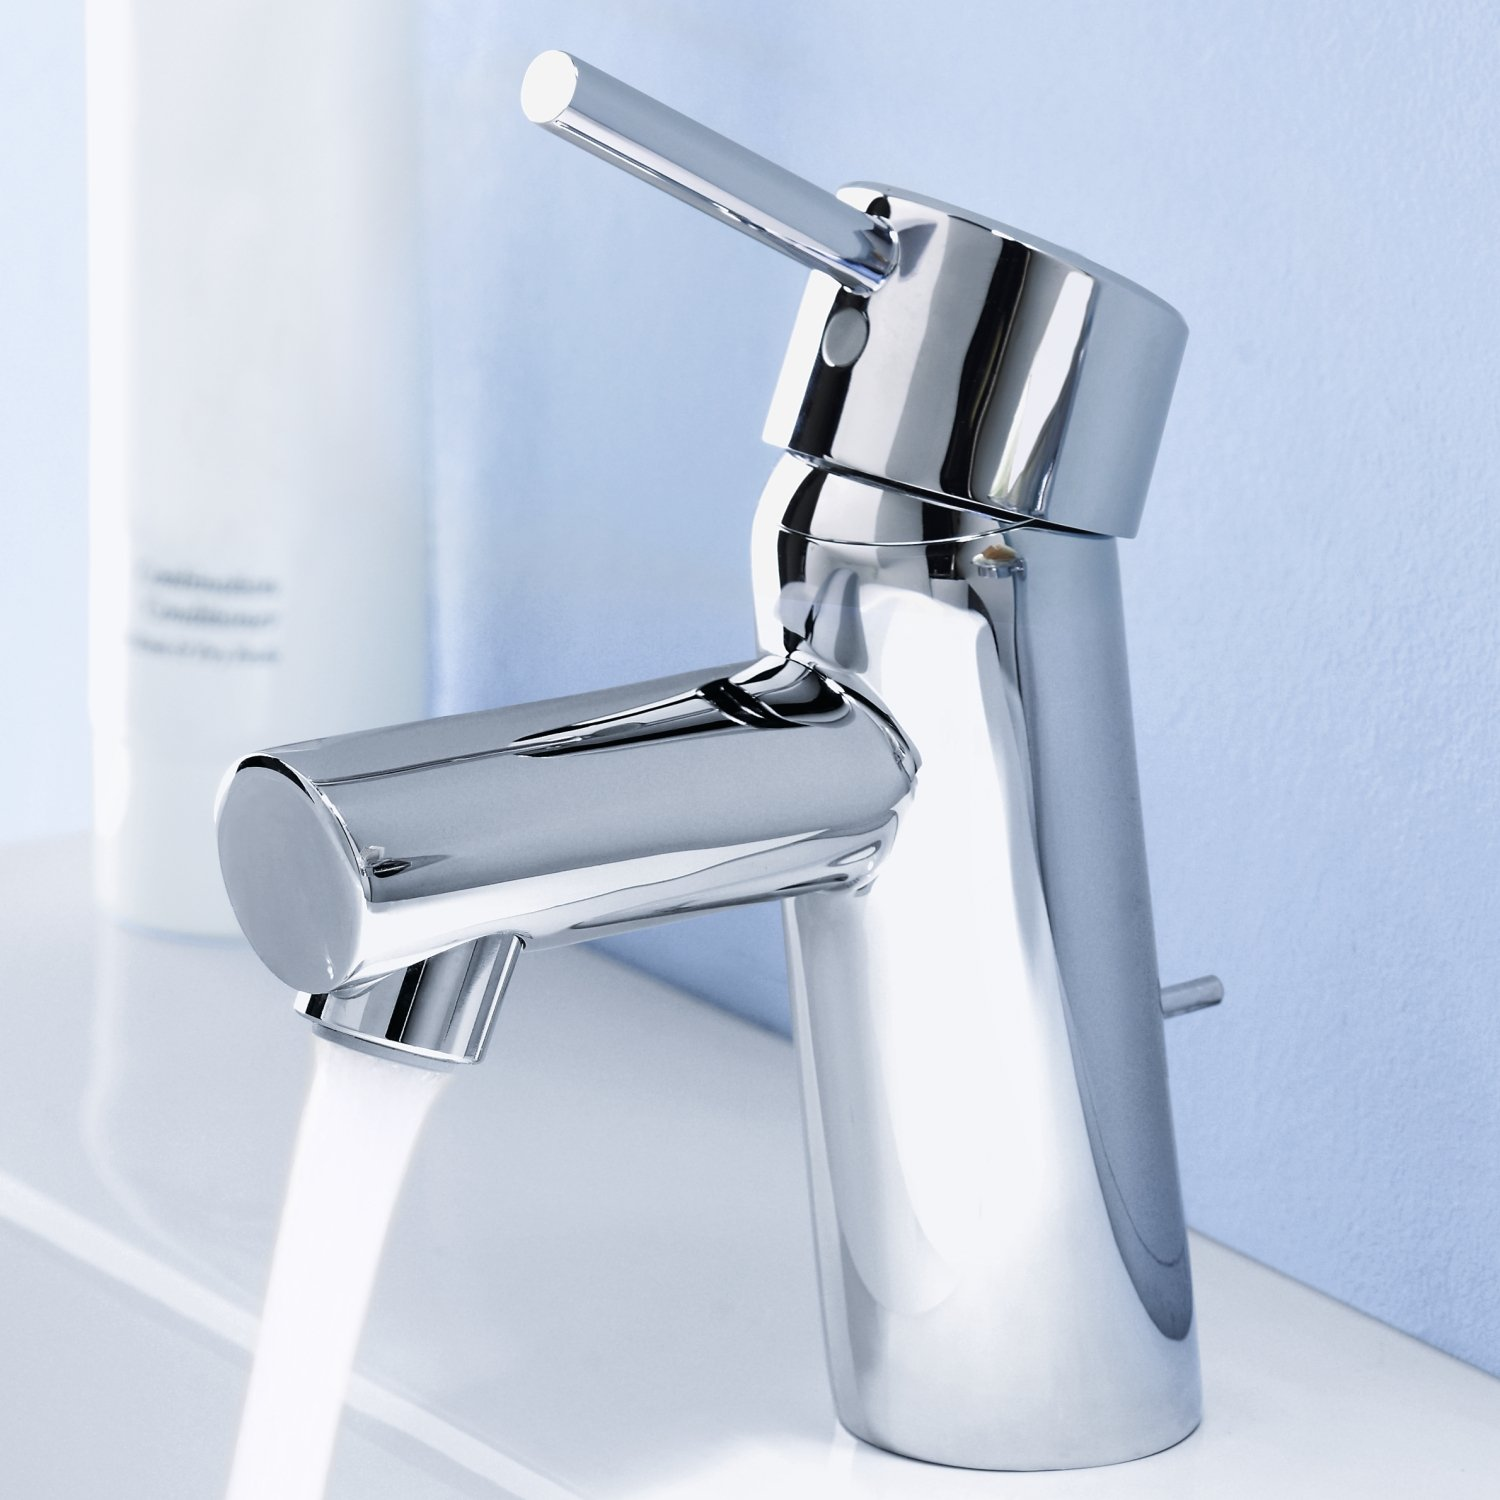 Grohe 34270001 Concetto Single Handle Bathroom Faucet   1.5 GPM   Touch On  Bathroom Sink Faucets   Amazon.com